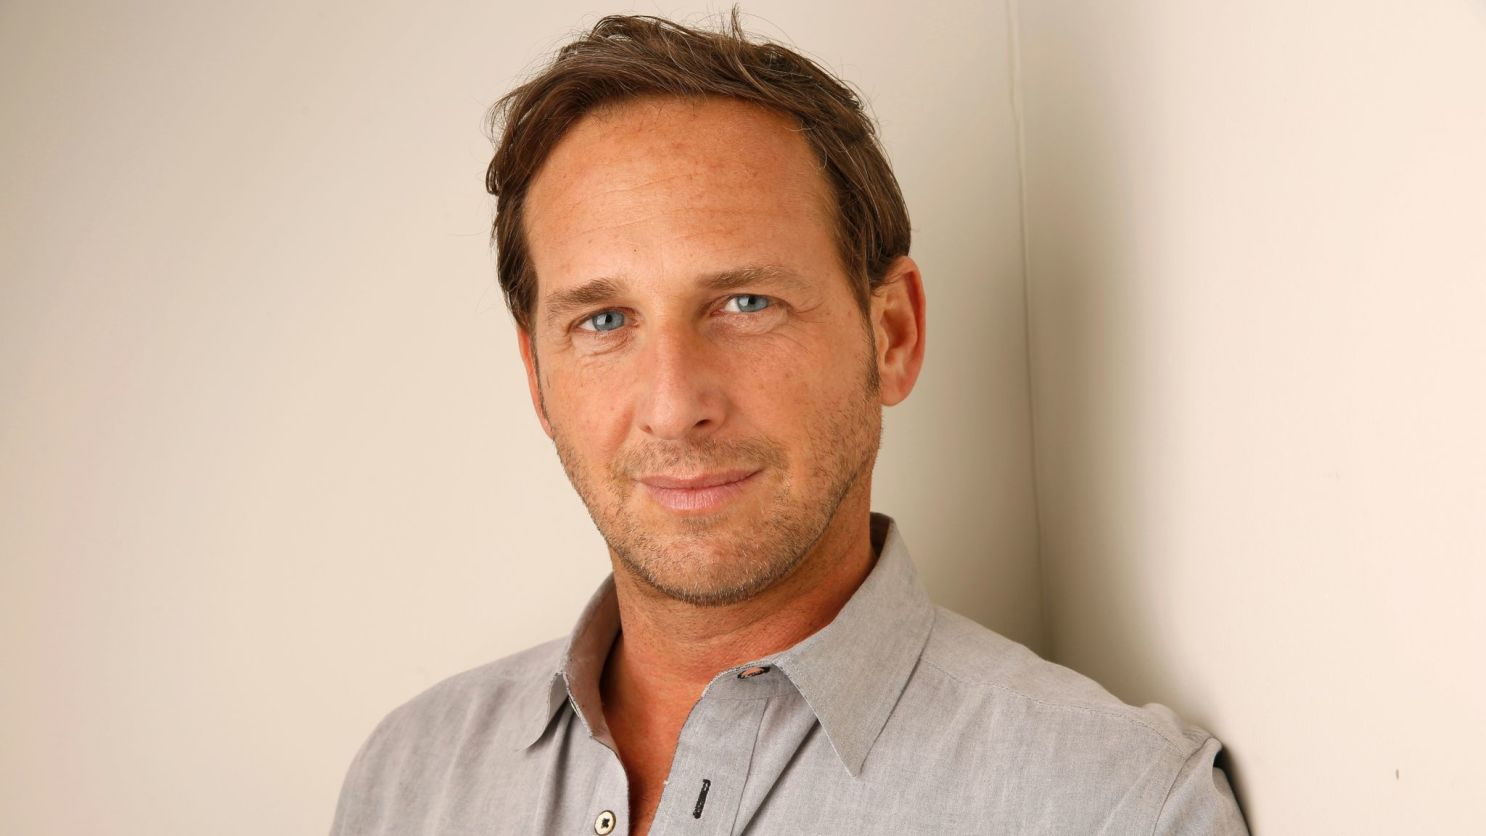 """josh-lucas-former-wife-claims-he-cheated-on-her-i-deserve-better-than-this"""